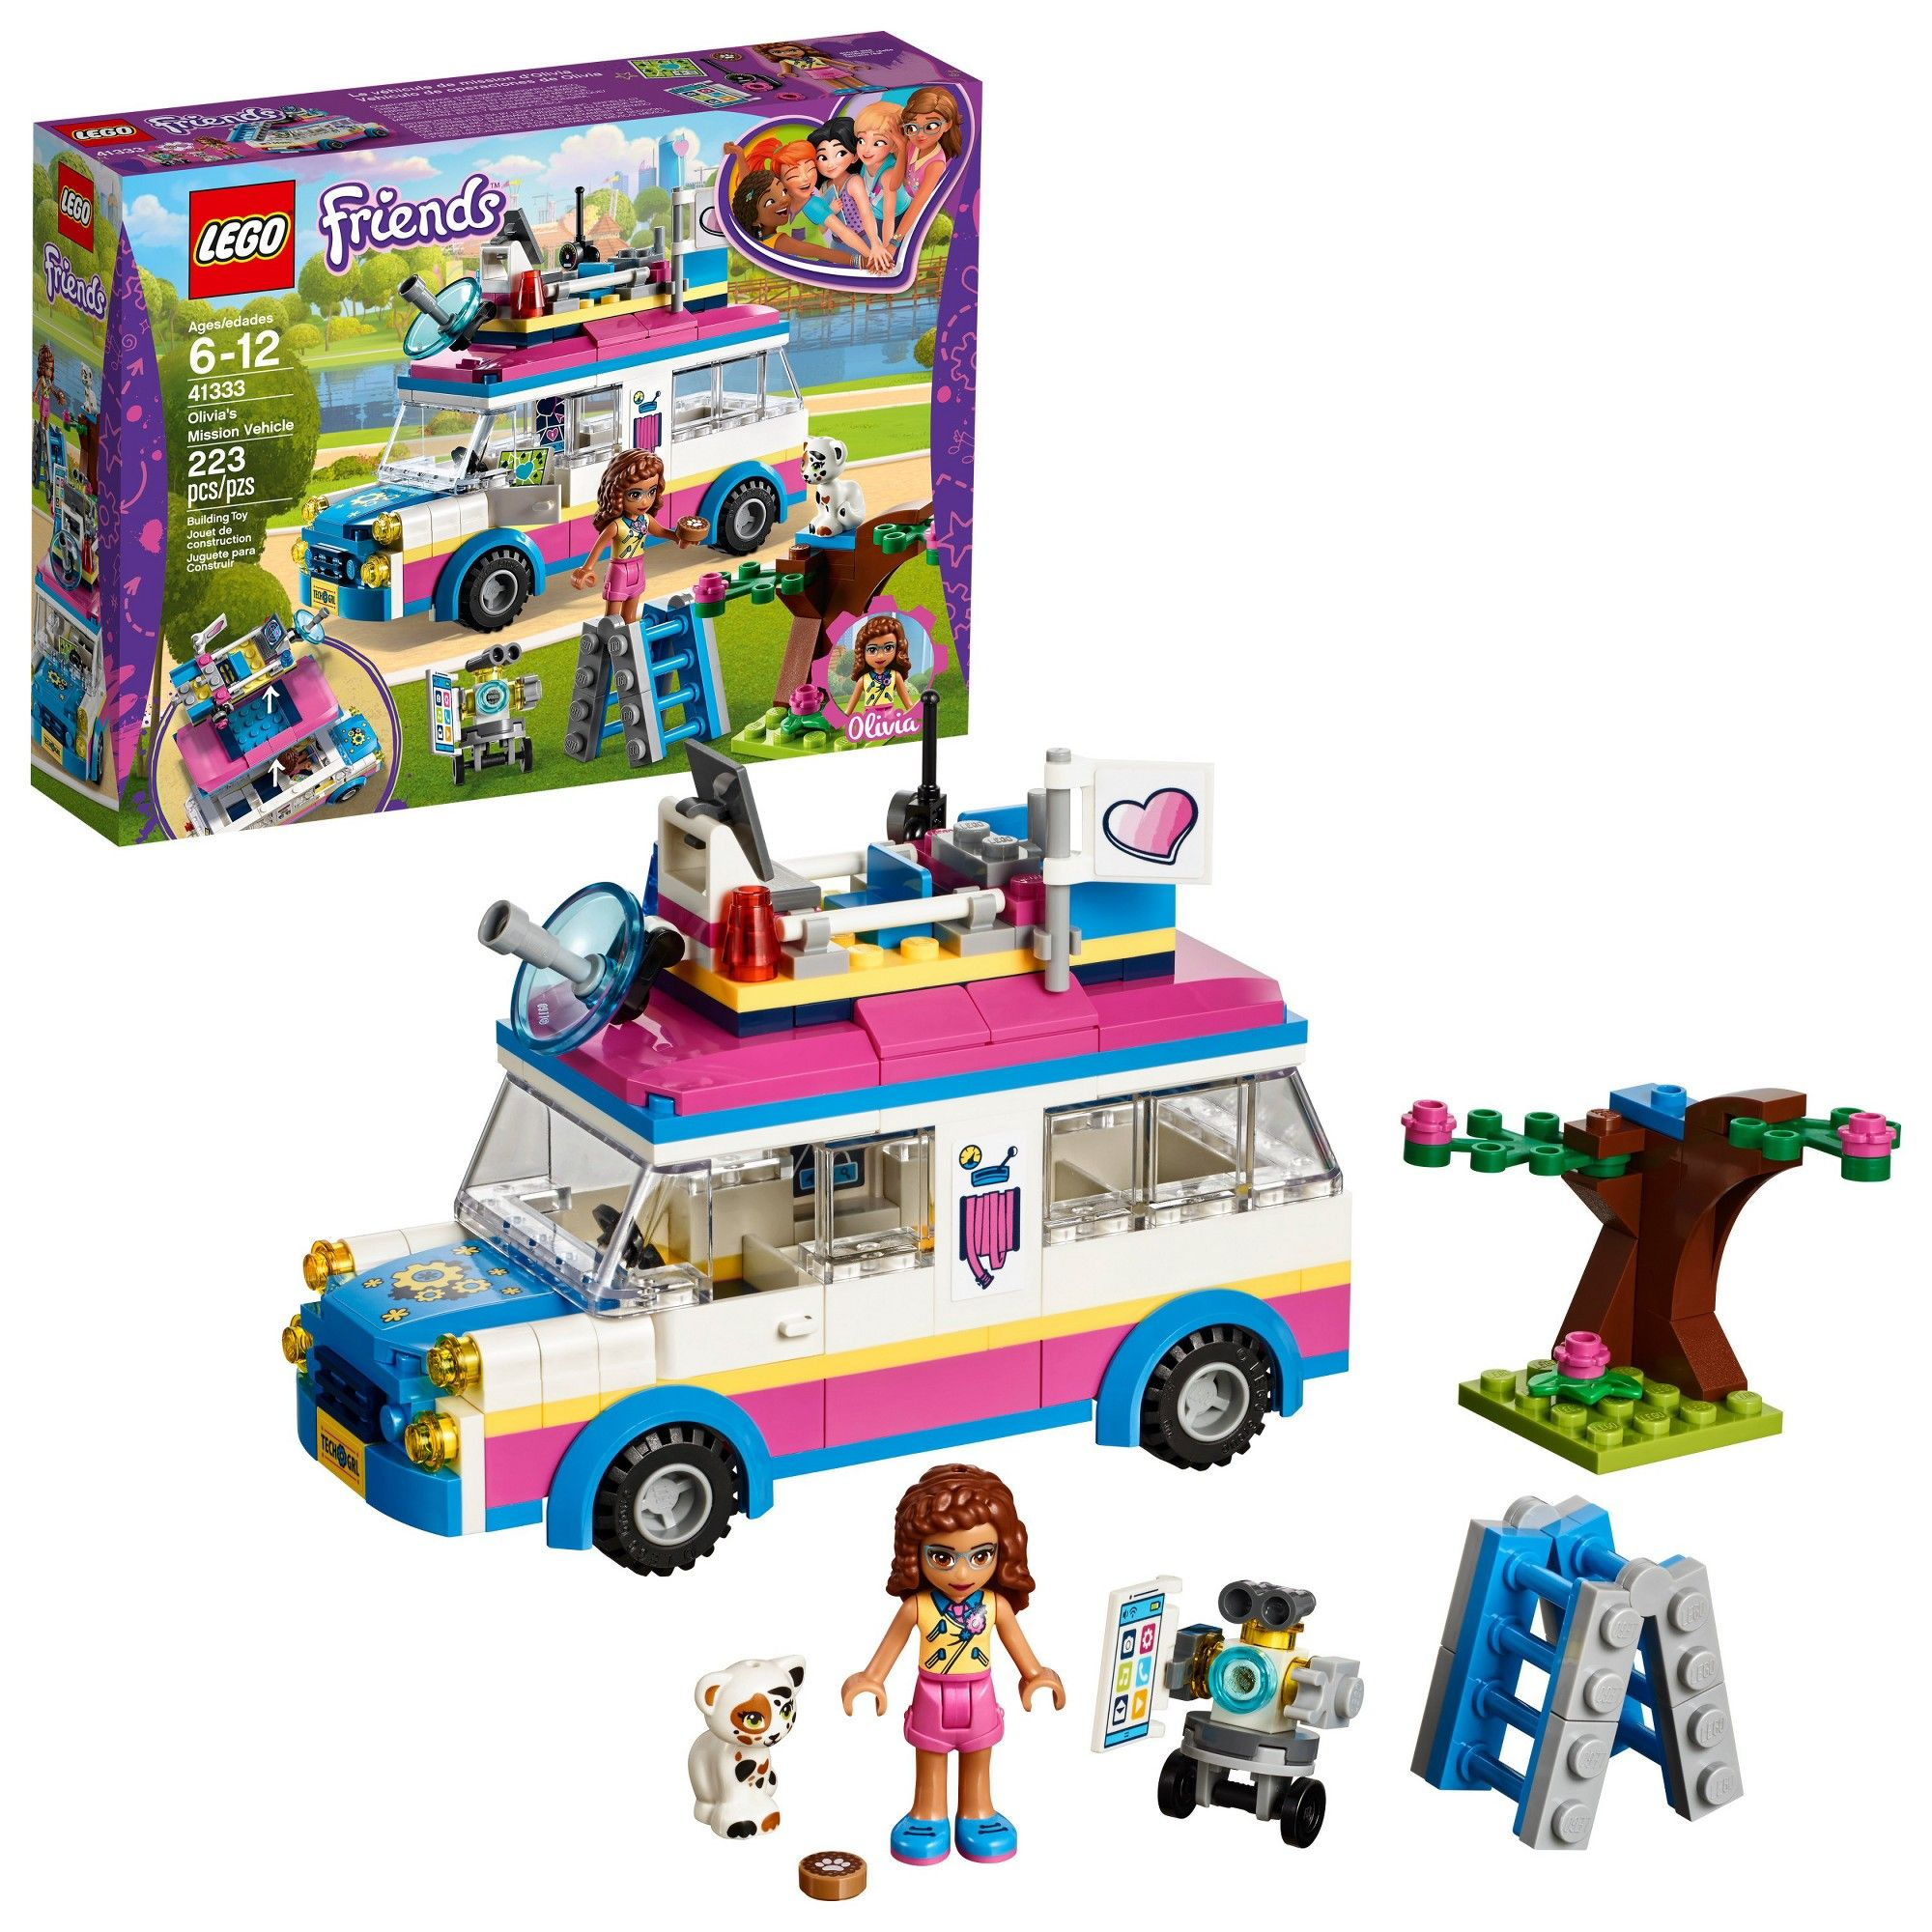 Lego Friends Christmas Sets.Lego Friends Olivia S Mission Vehicle 41333 Products